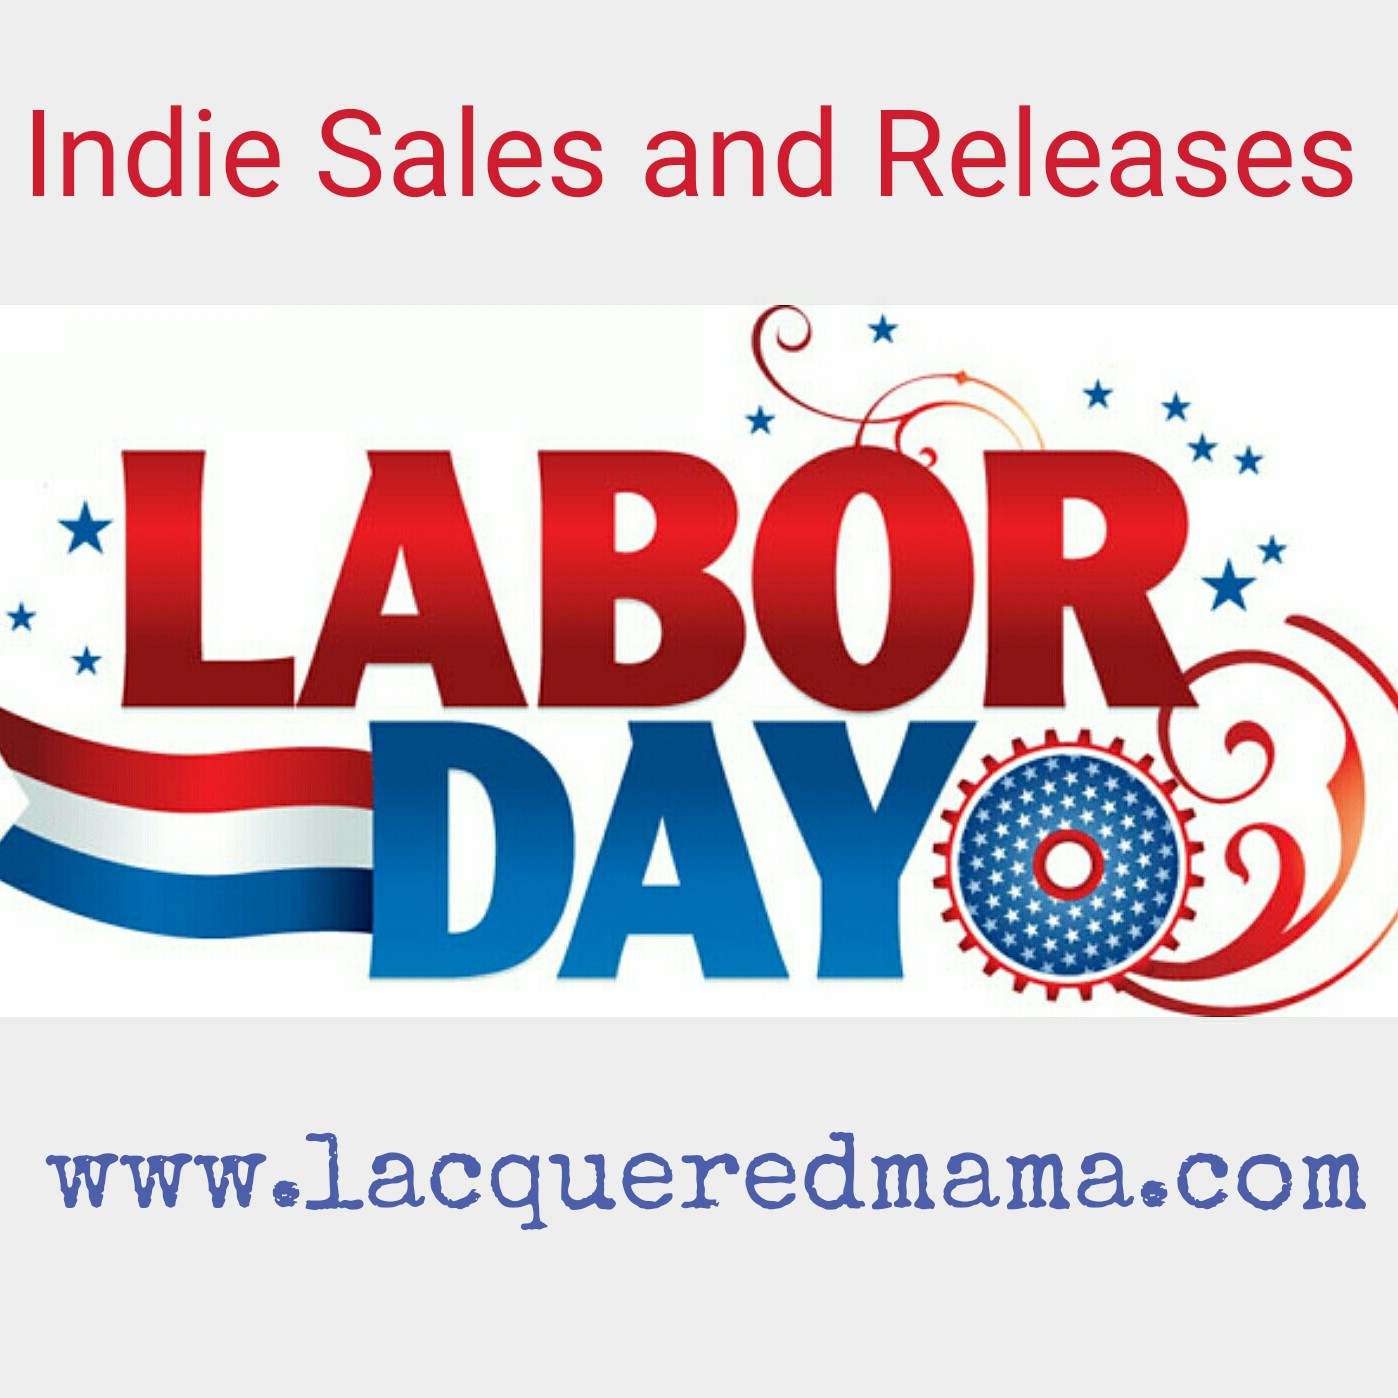 Labor Day Weekend Sale: LacqueredMama: Labor Day Weekend Nail Polish Sale & Releases